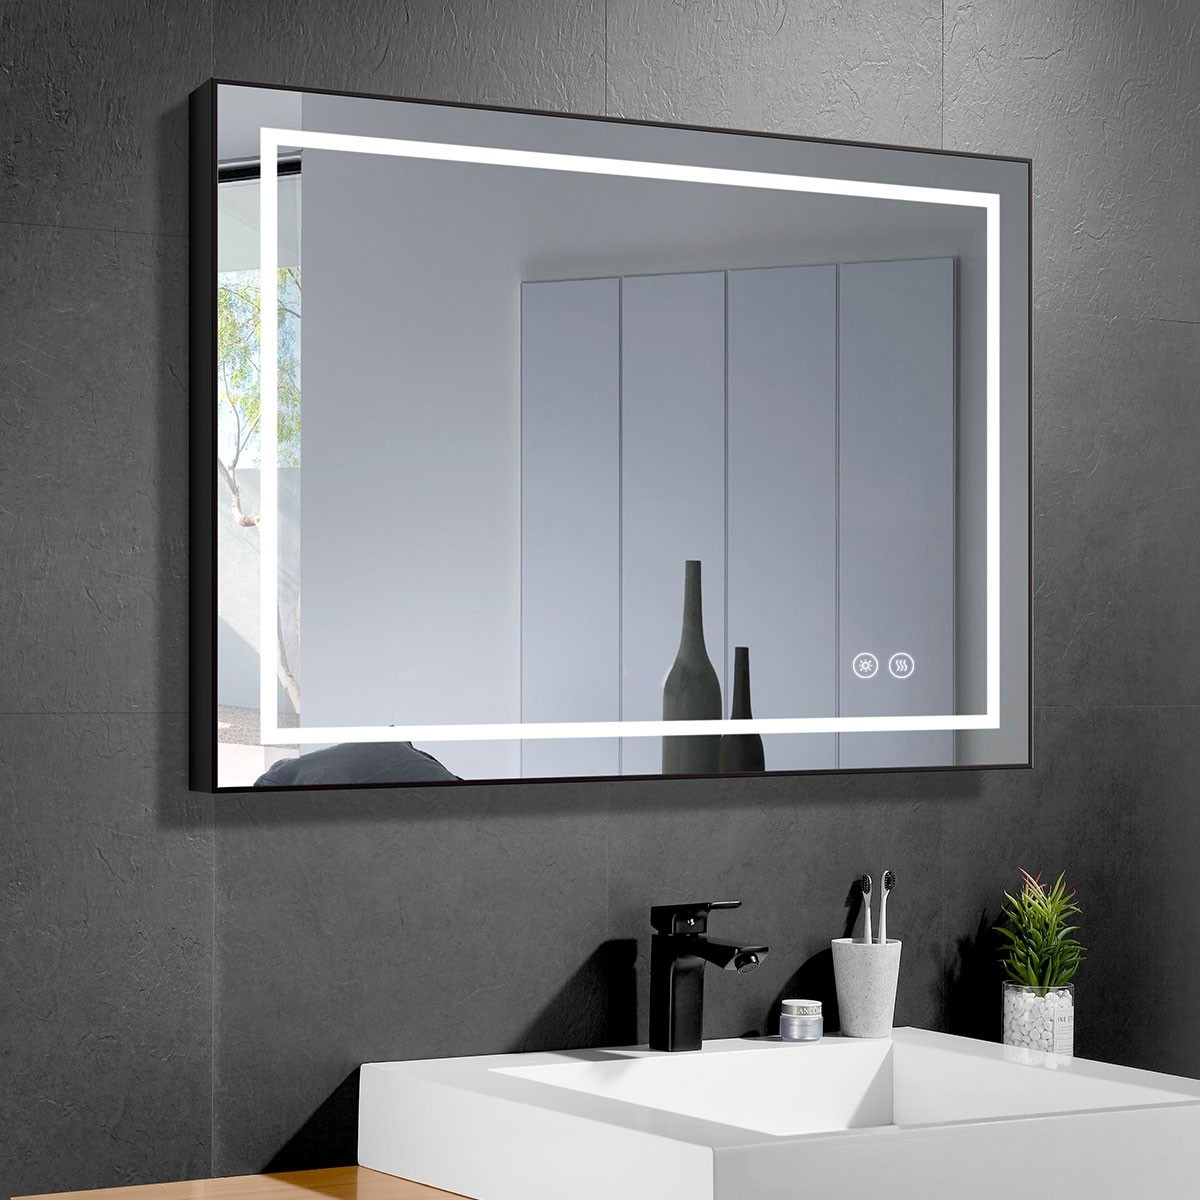 DECORAPORT 36 x 28 Inch LED Bathroom Mirror with Touch Button, Black Frame, Anti Fog, Dimmable, Vertical & Horizontal Mount (D613-3628)